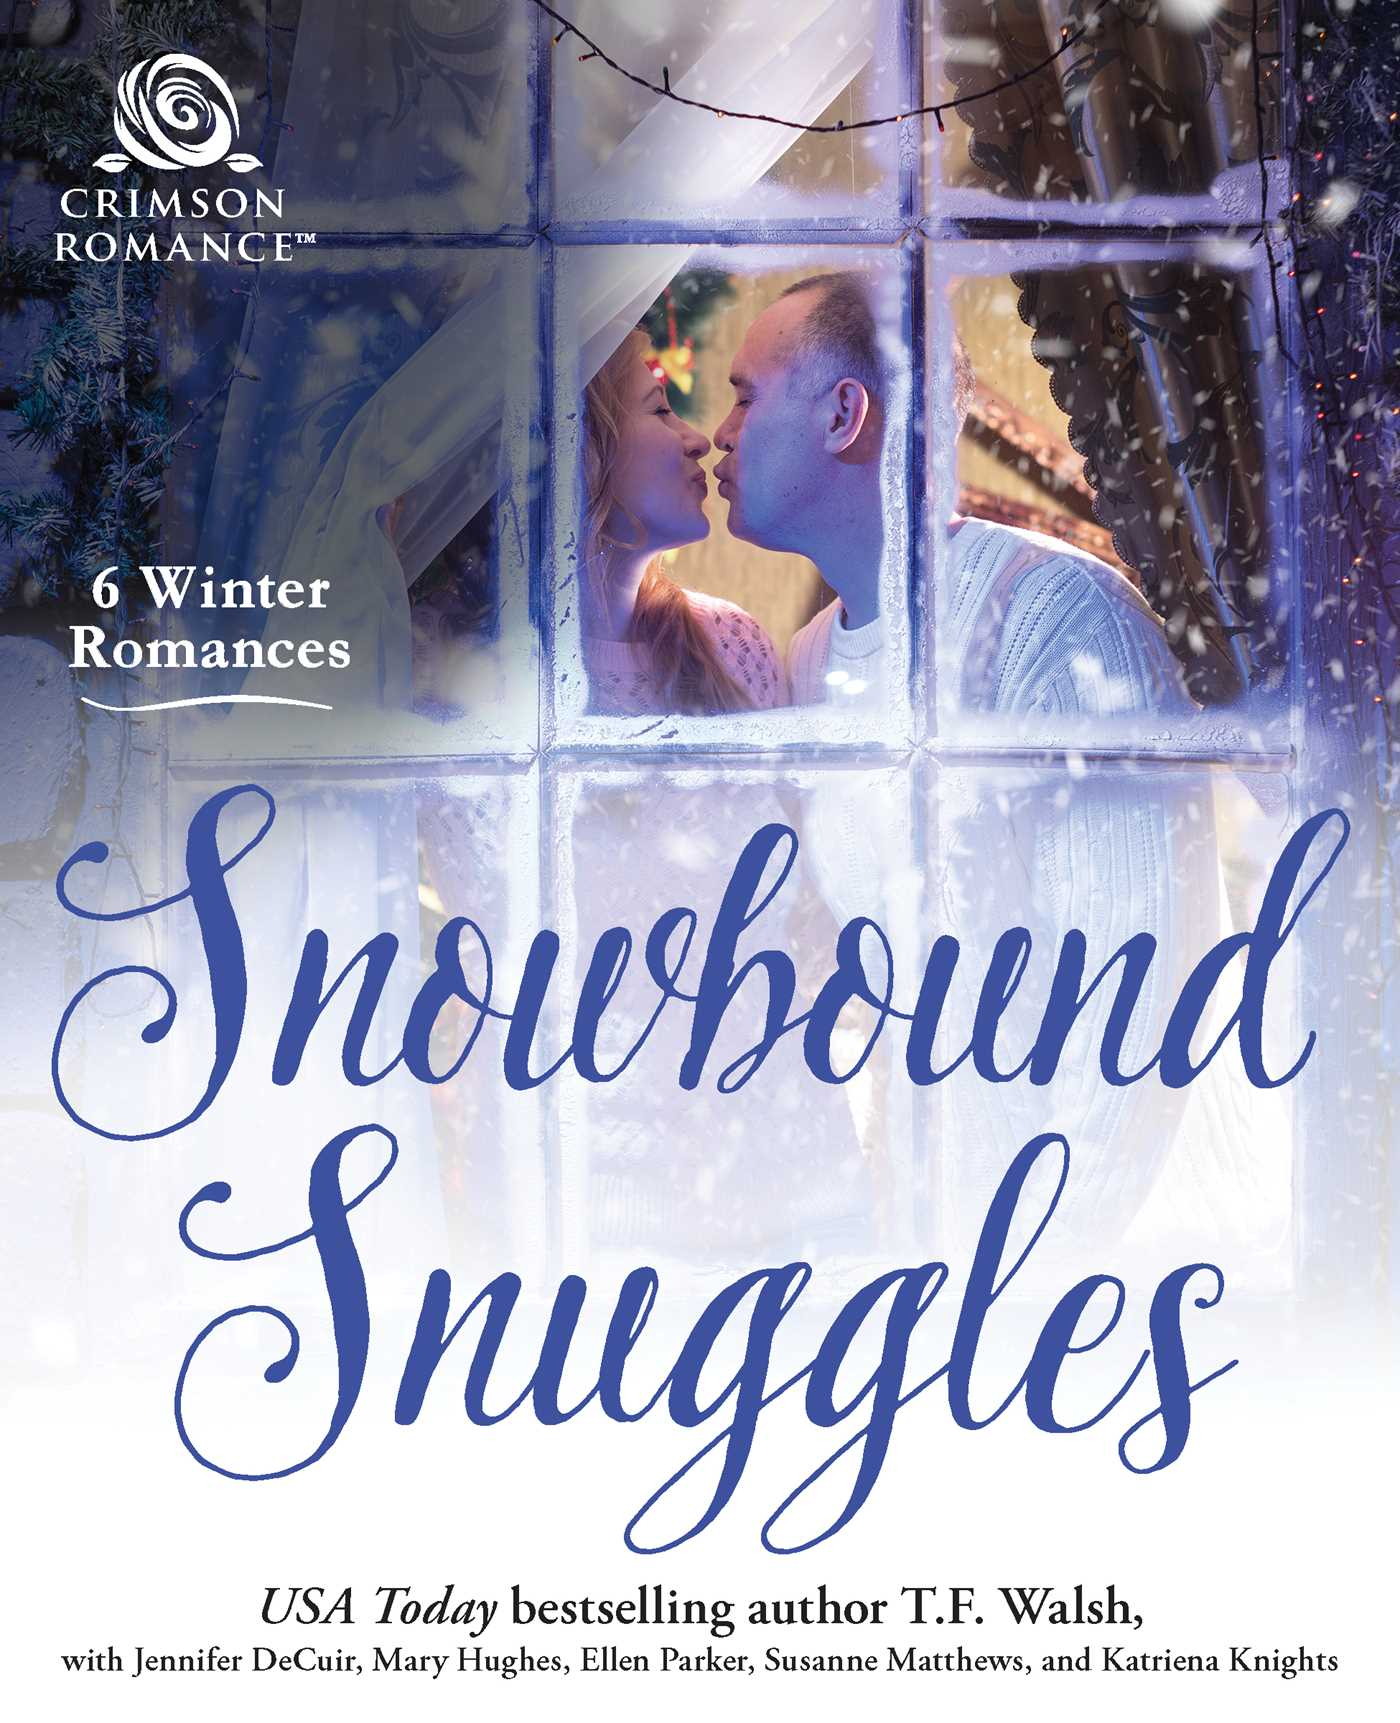 Snowbound snuggles 9781507207352 hr